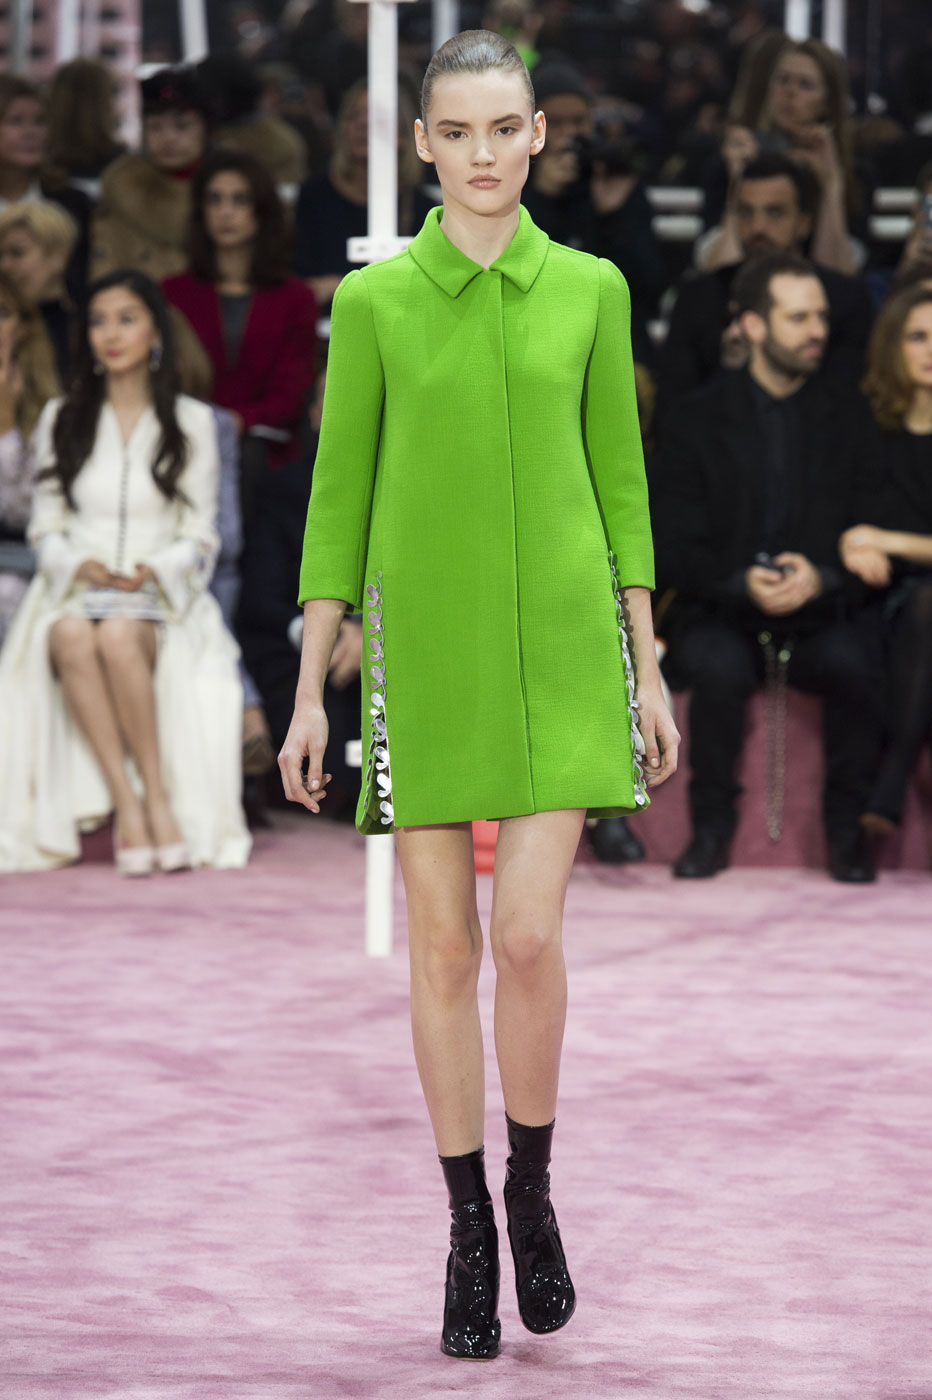 Christian-Dior-fashion-runway-show-haute-couture-paris-spring-summer-2015-the-impression-023